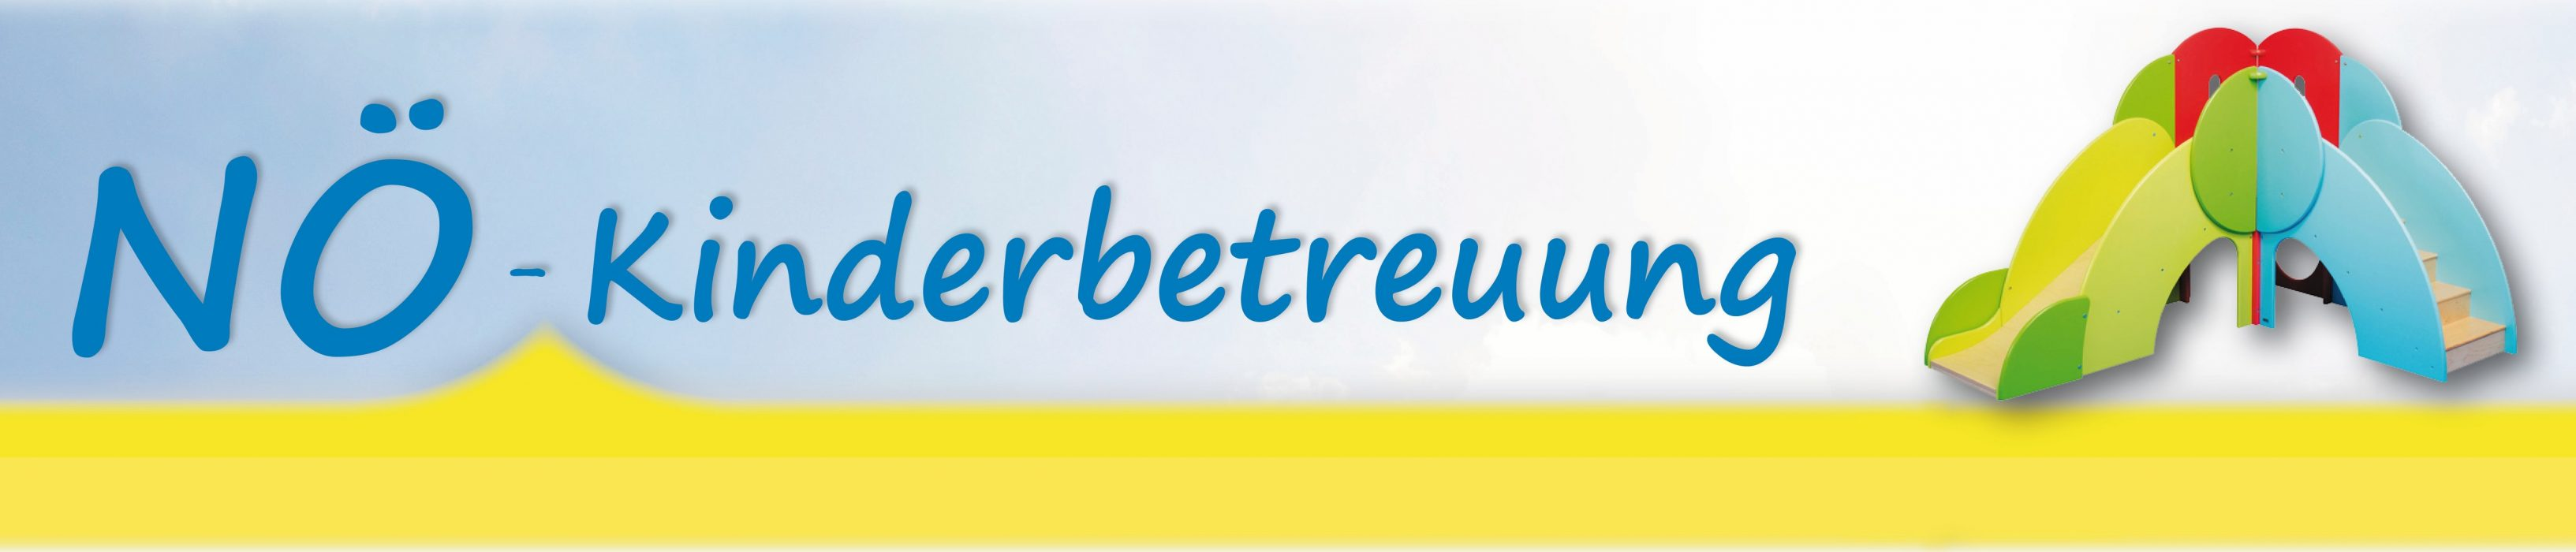 NÖ-Kinderbetreuung Logo